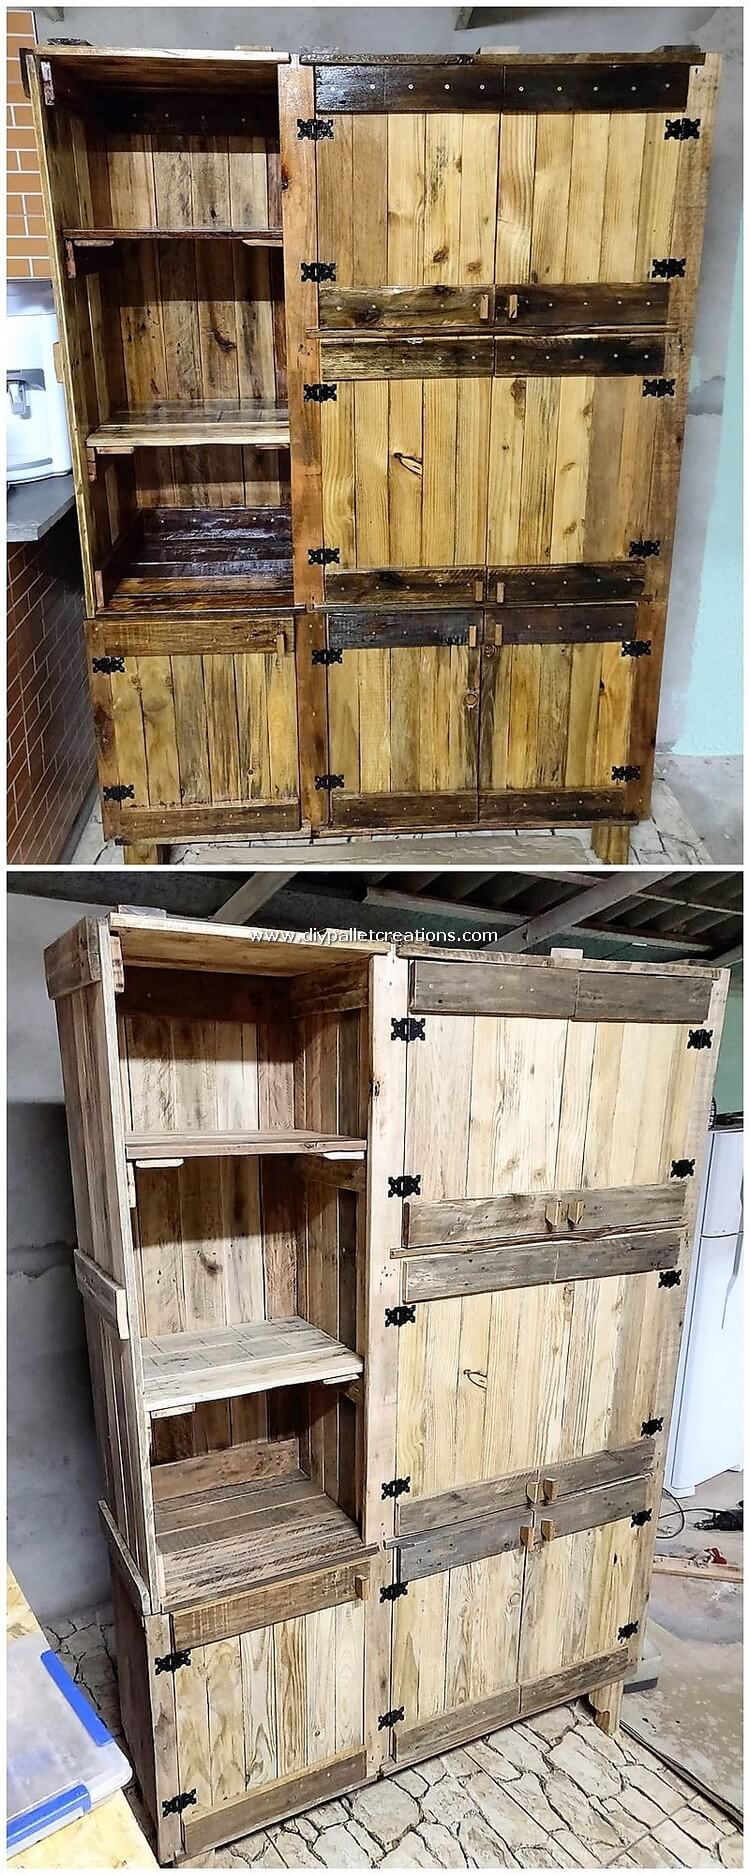 Pallet Cupboard or Cabinet